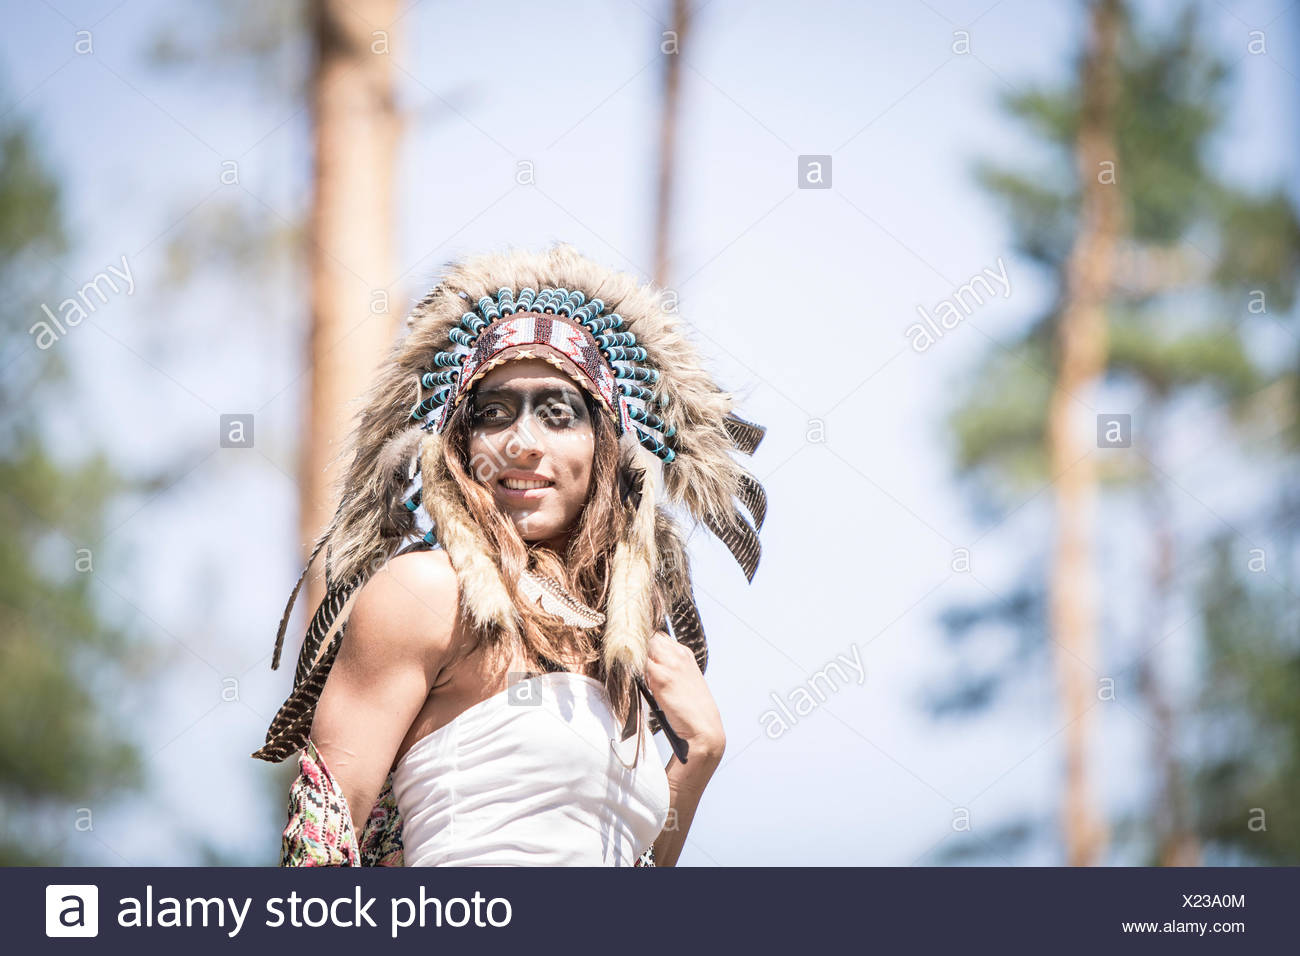 Portrait of young woman masquerade as an Indian - Stock Image